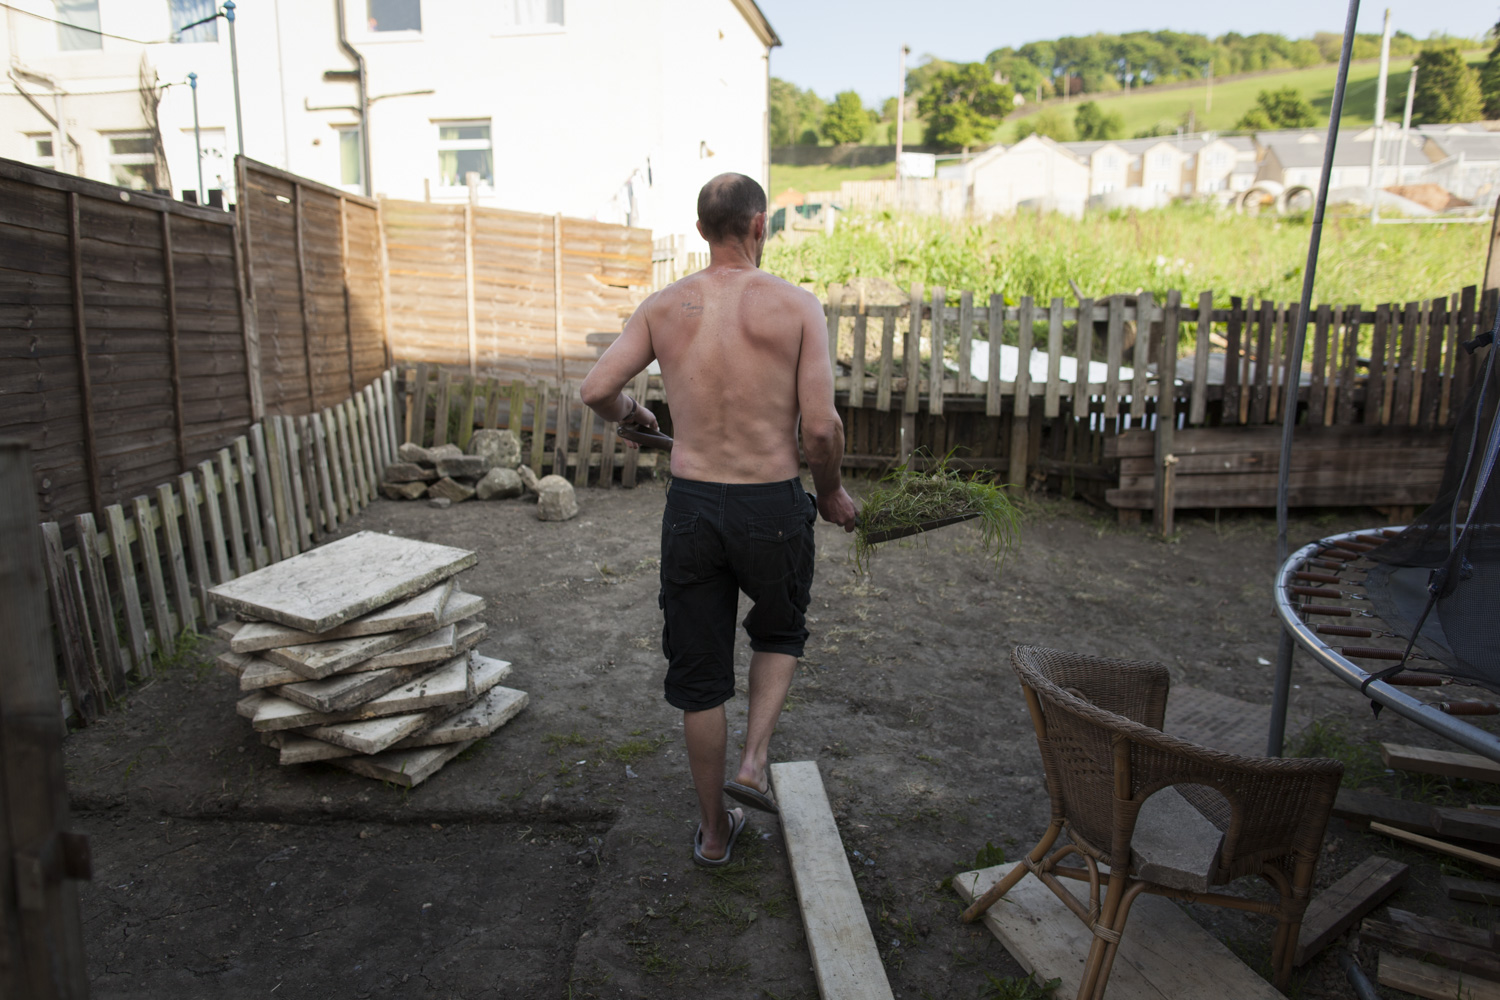 Dean working on the back garden. It's part of his plan to create a turfed garden for the kids to play in.